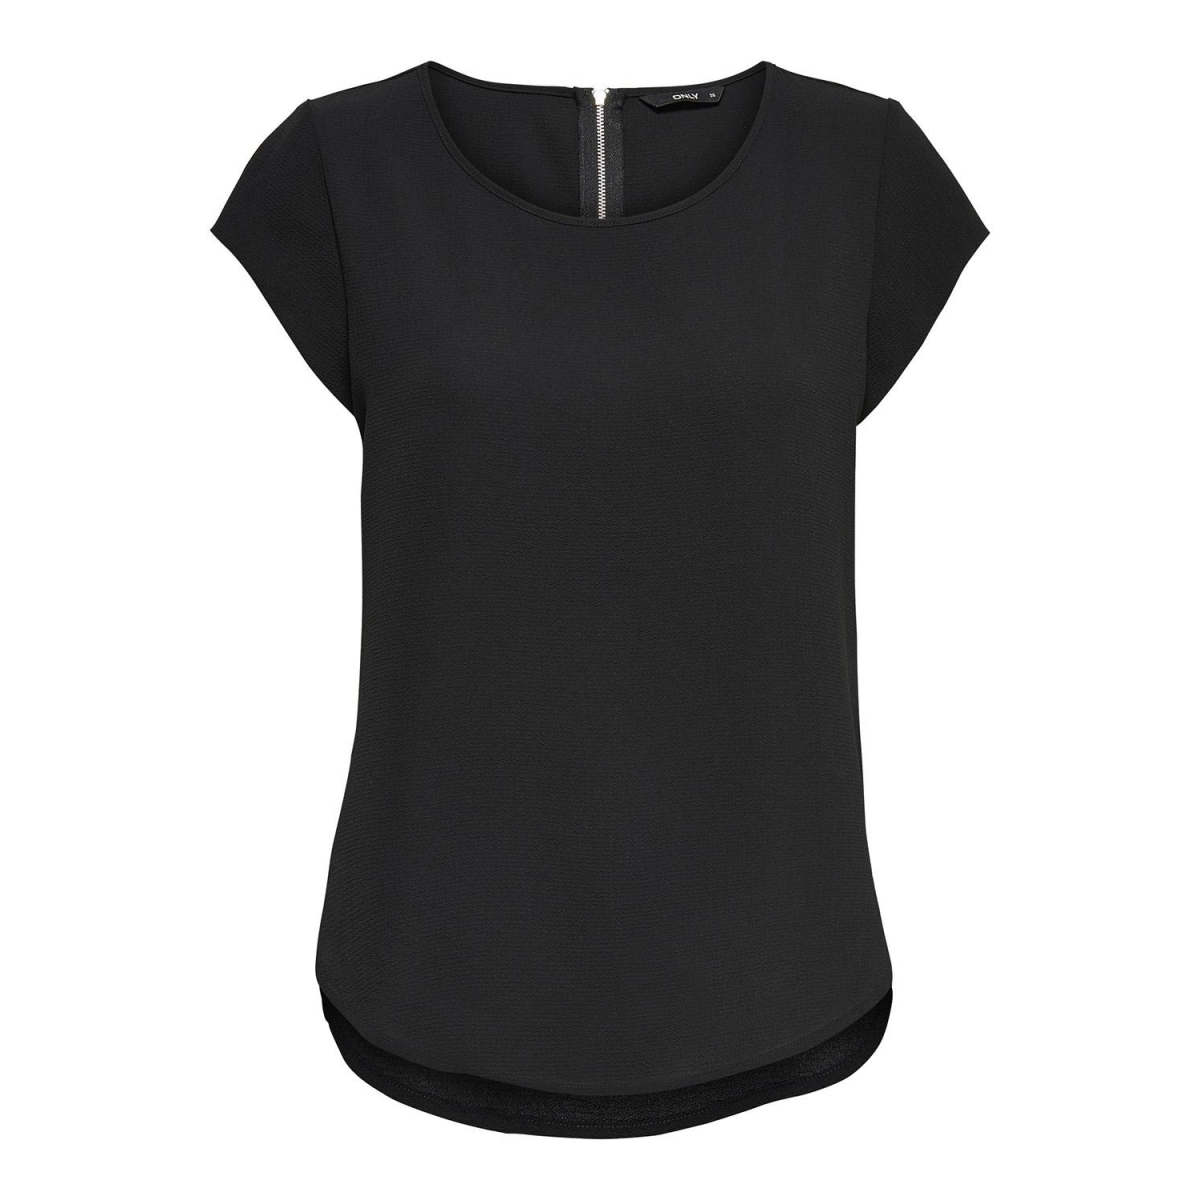 onlvic s/s solid top noos wvn 15142784 only t-shirt black